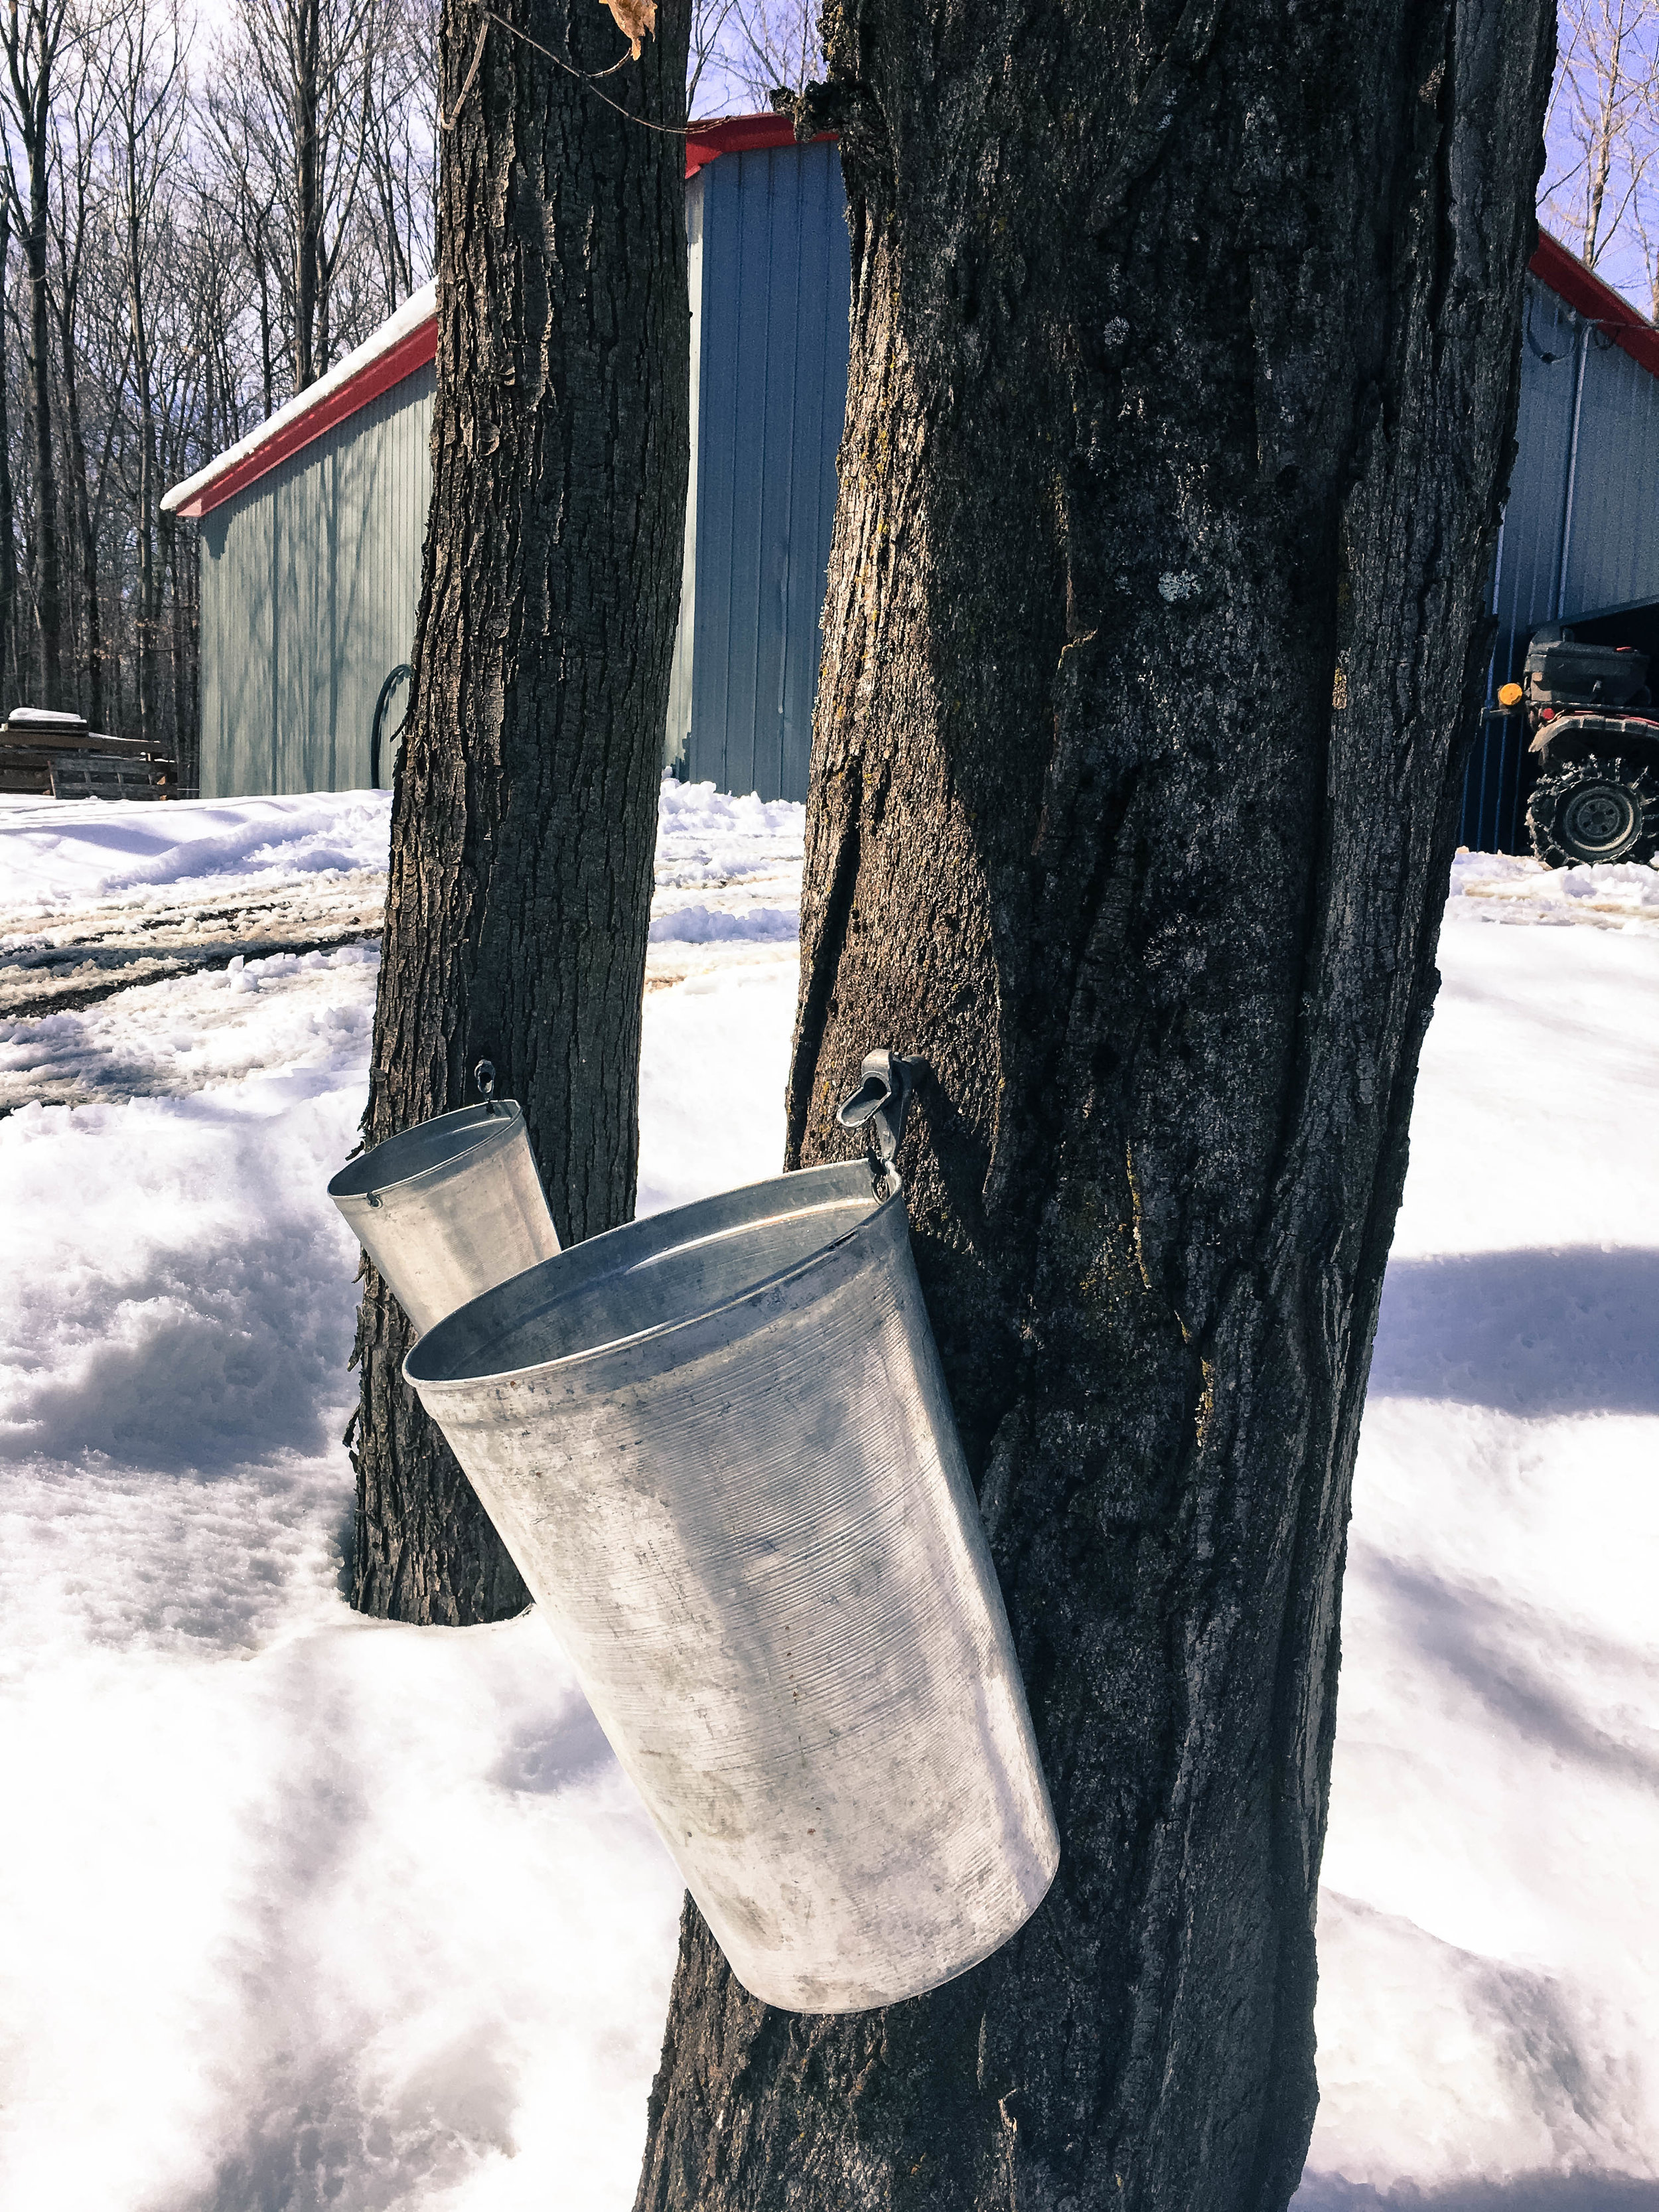 Cabane à sucre. Traditional bucket to collect maple water